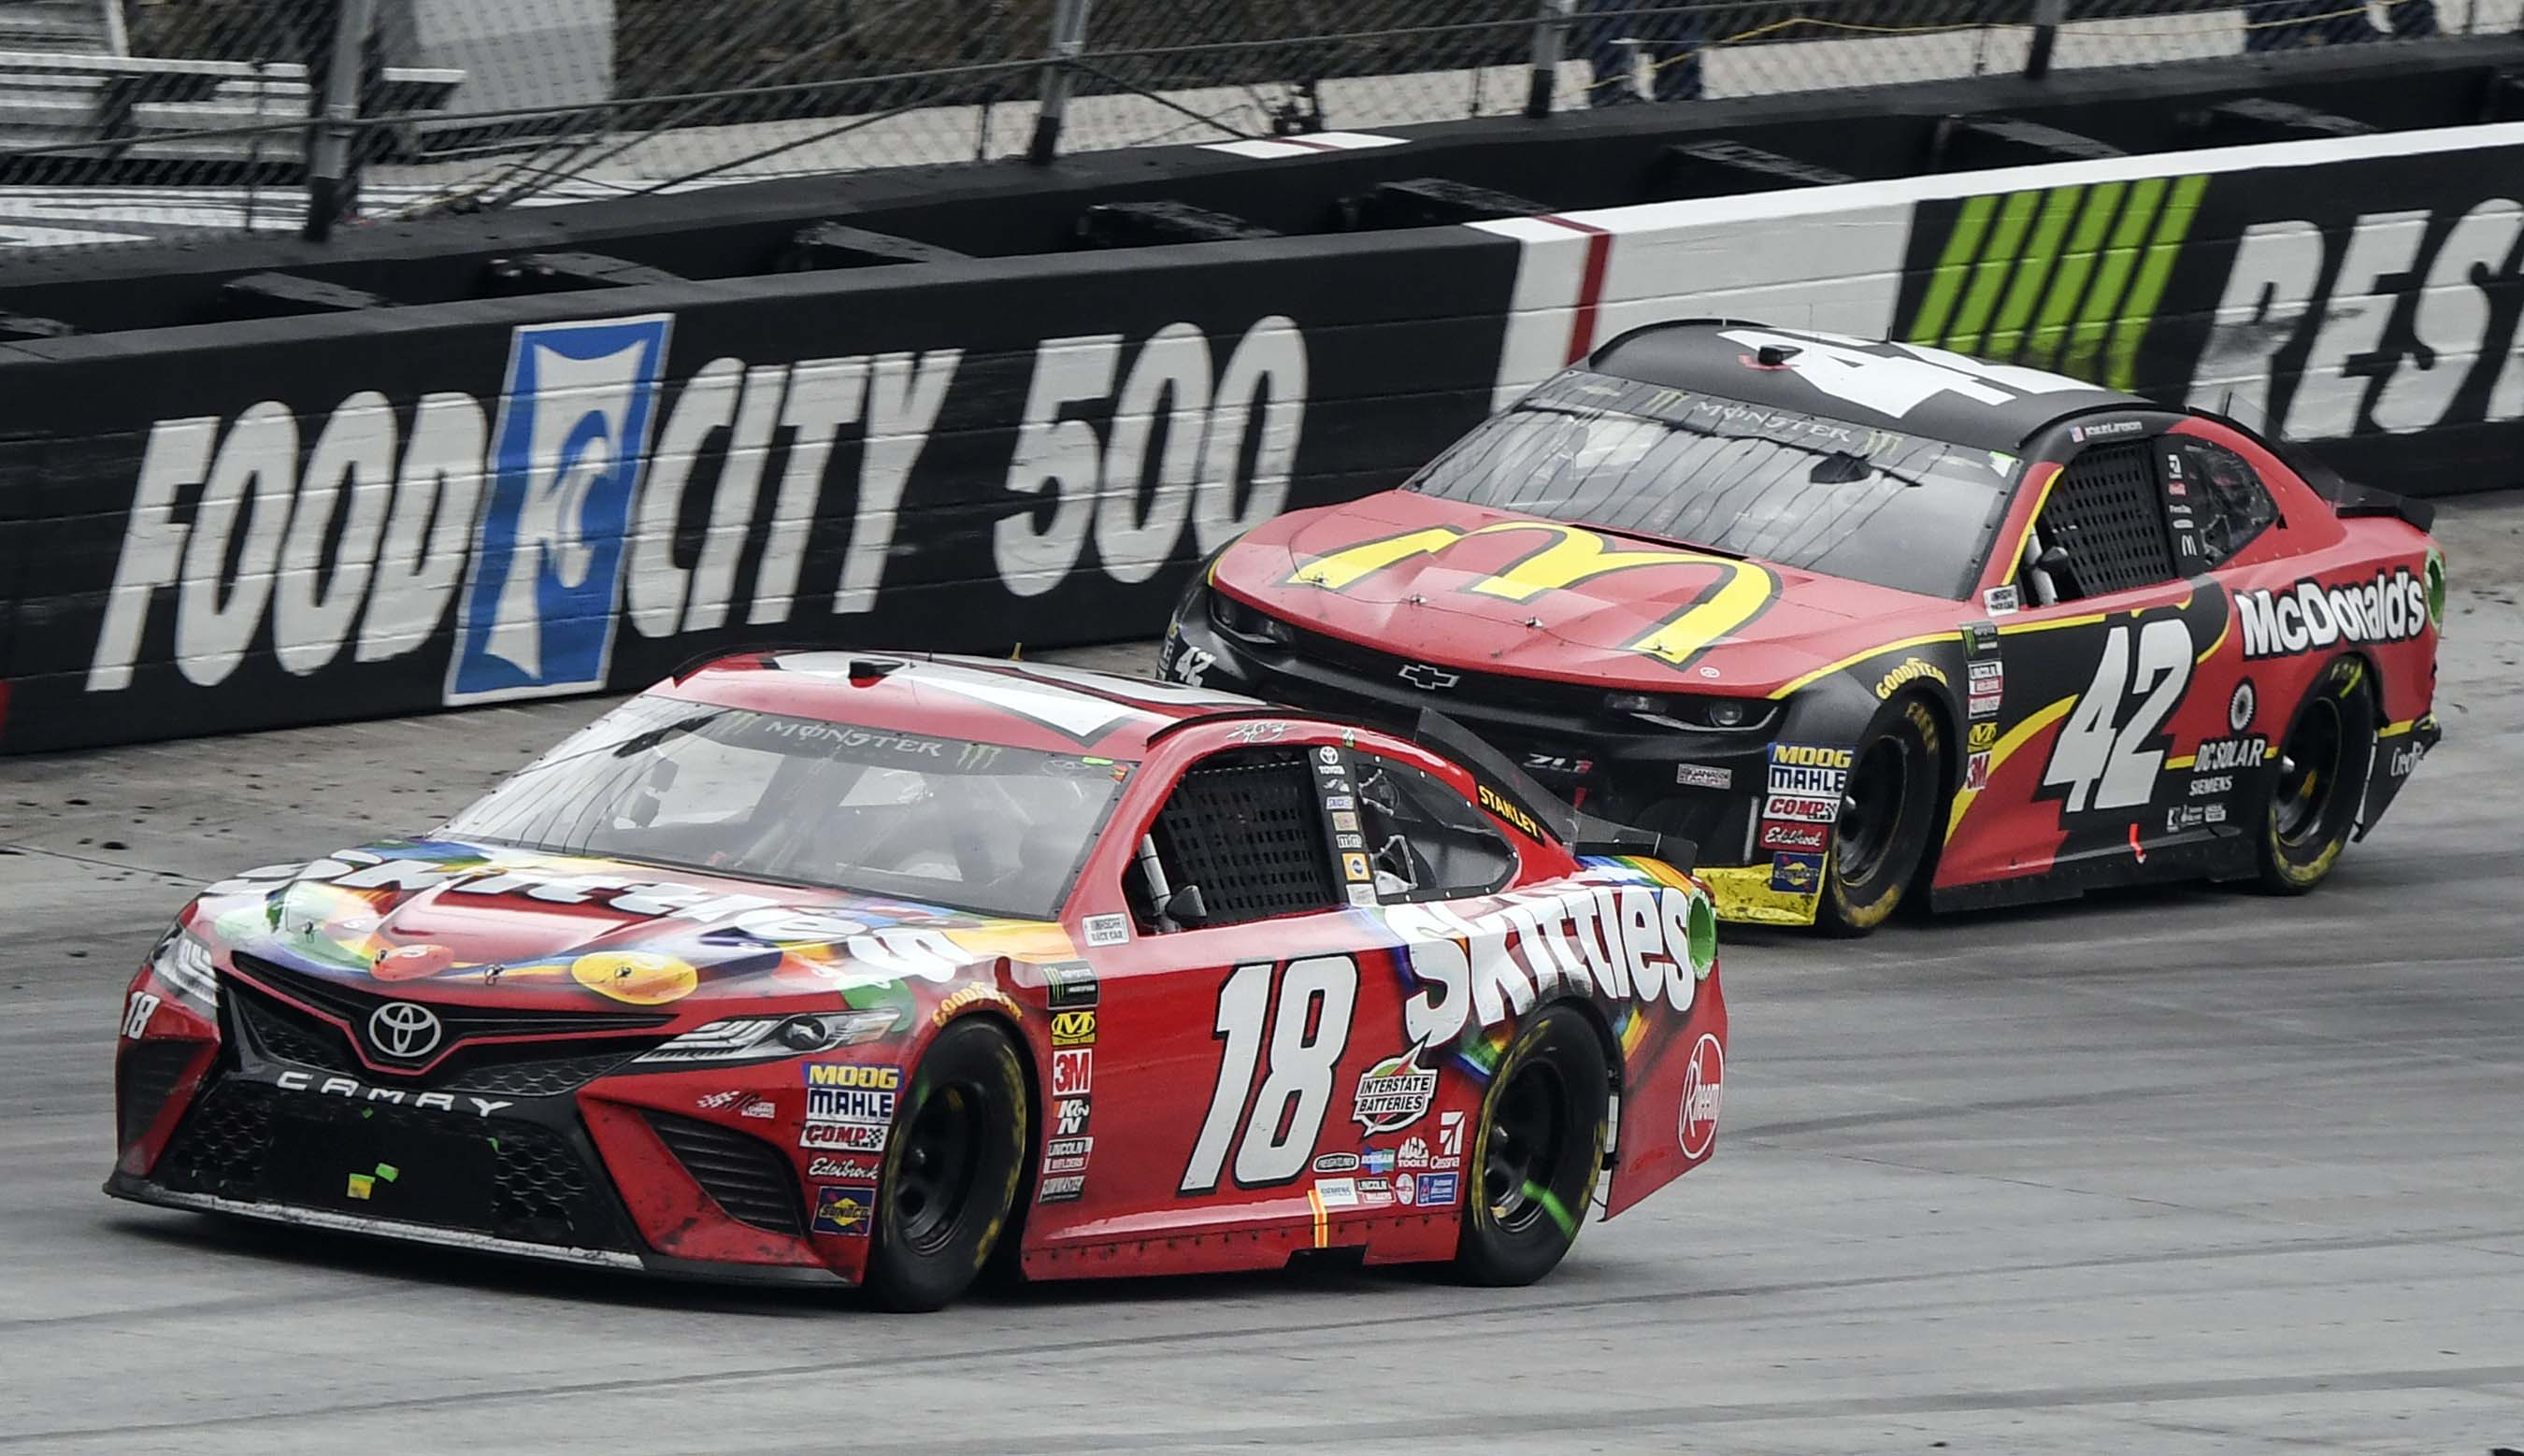 Today's Cup race at Bristol: Start time, lineup and more